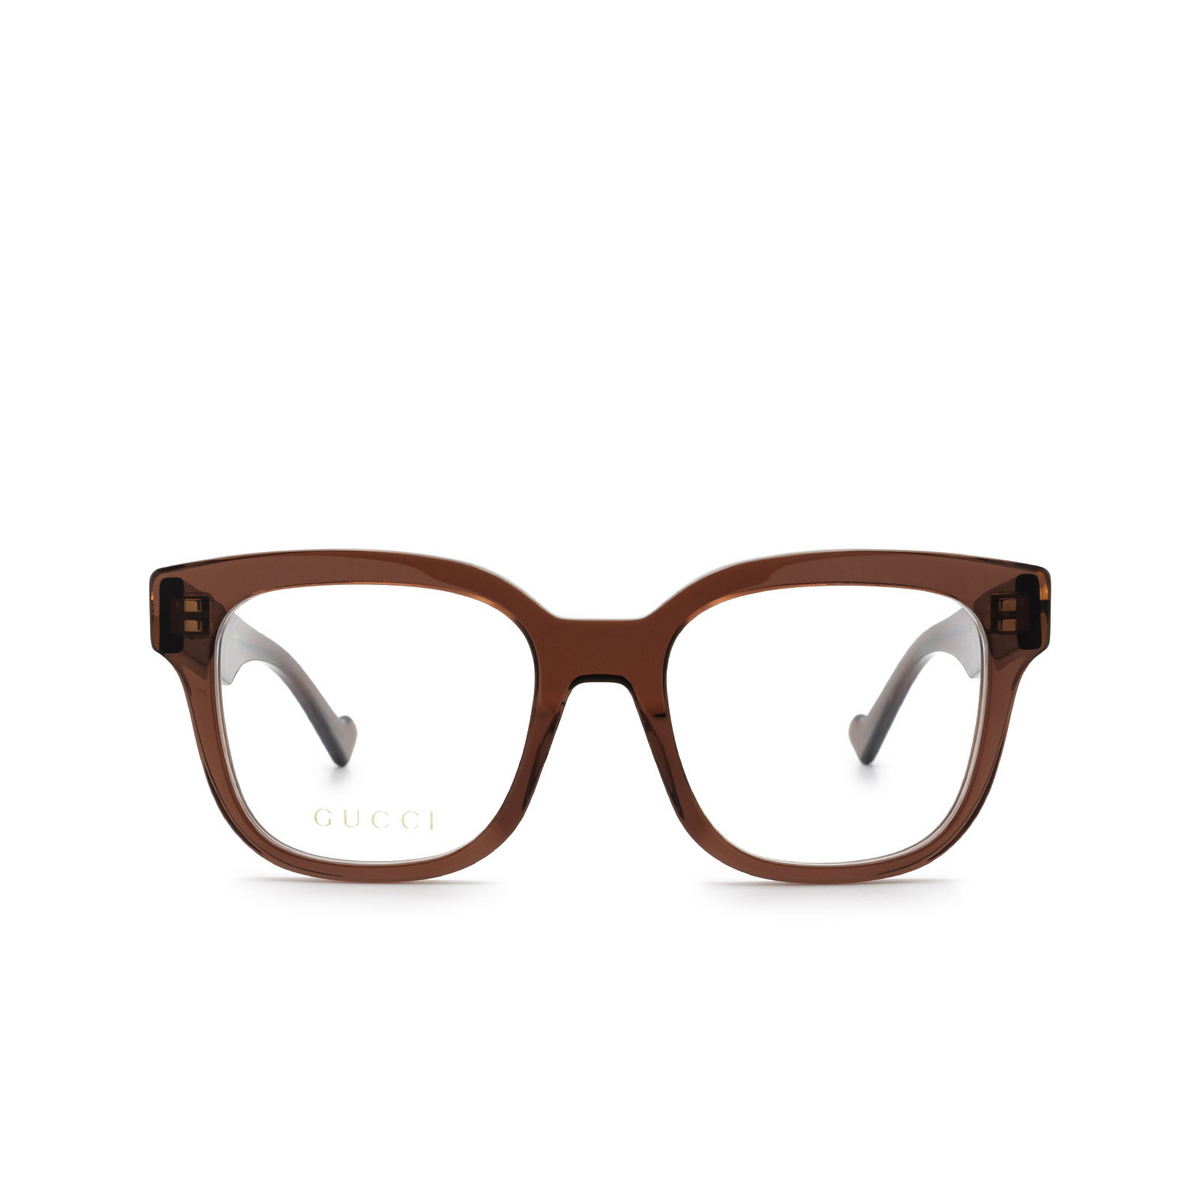 Gucci® Square Eyeglasses: GG0958O color Burgundy 003 - front view.